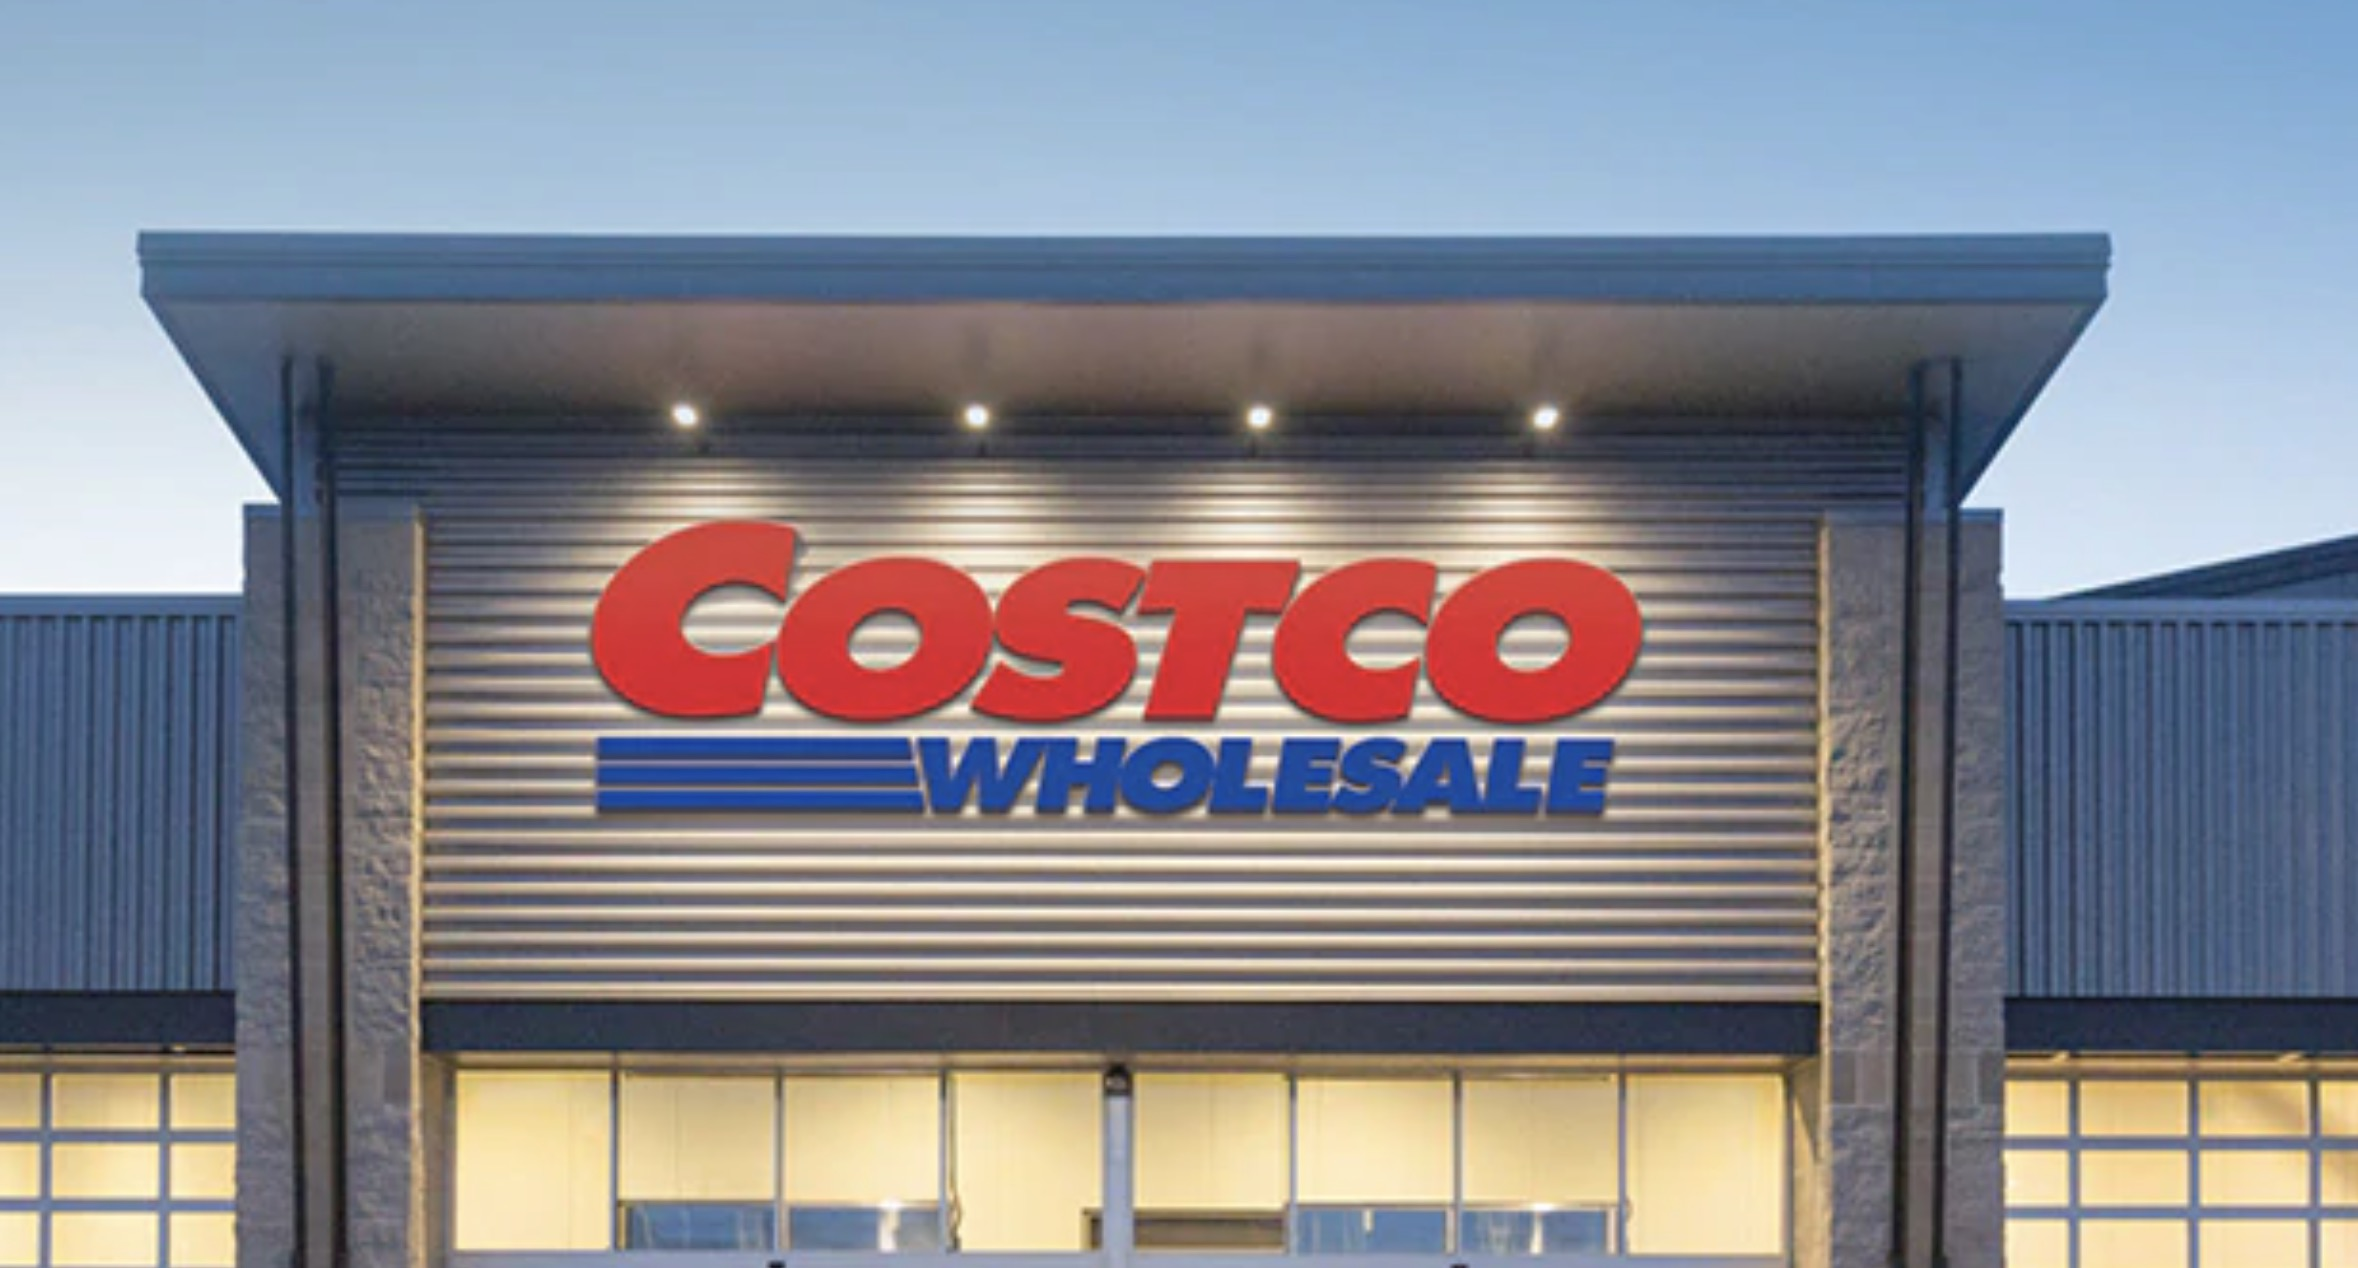 (Credit: Costco Wholesale)